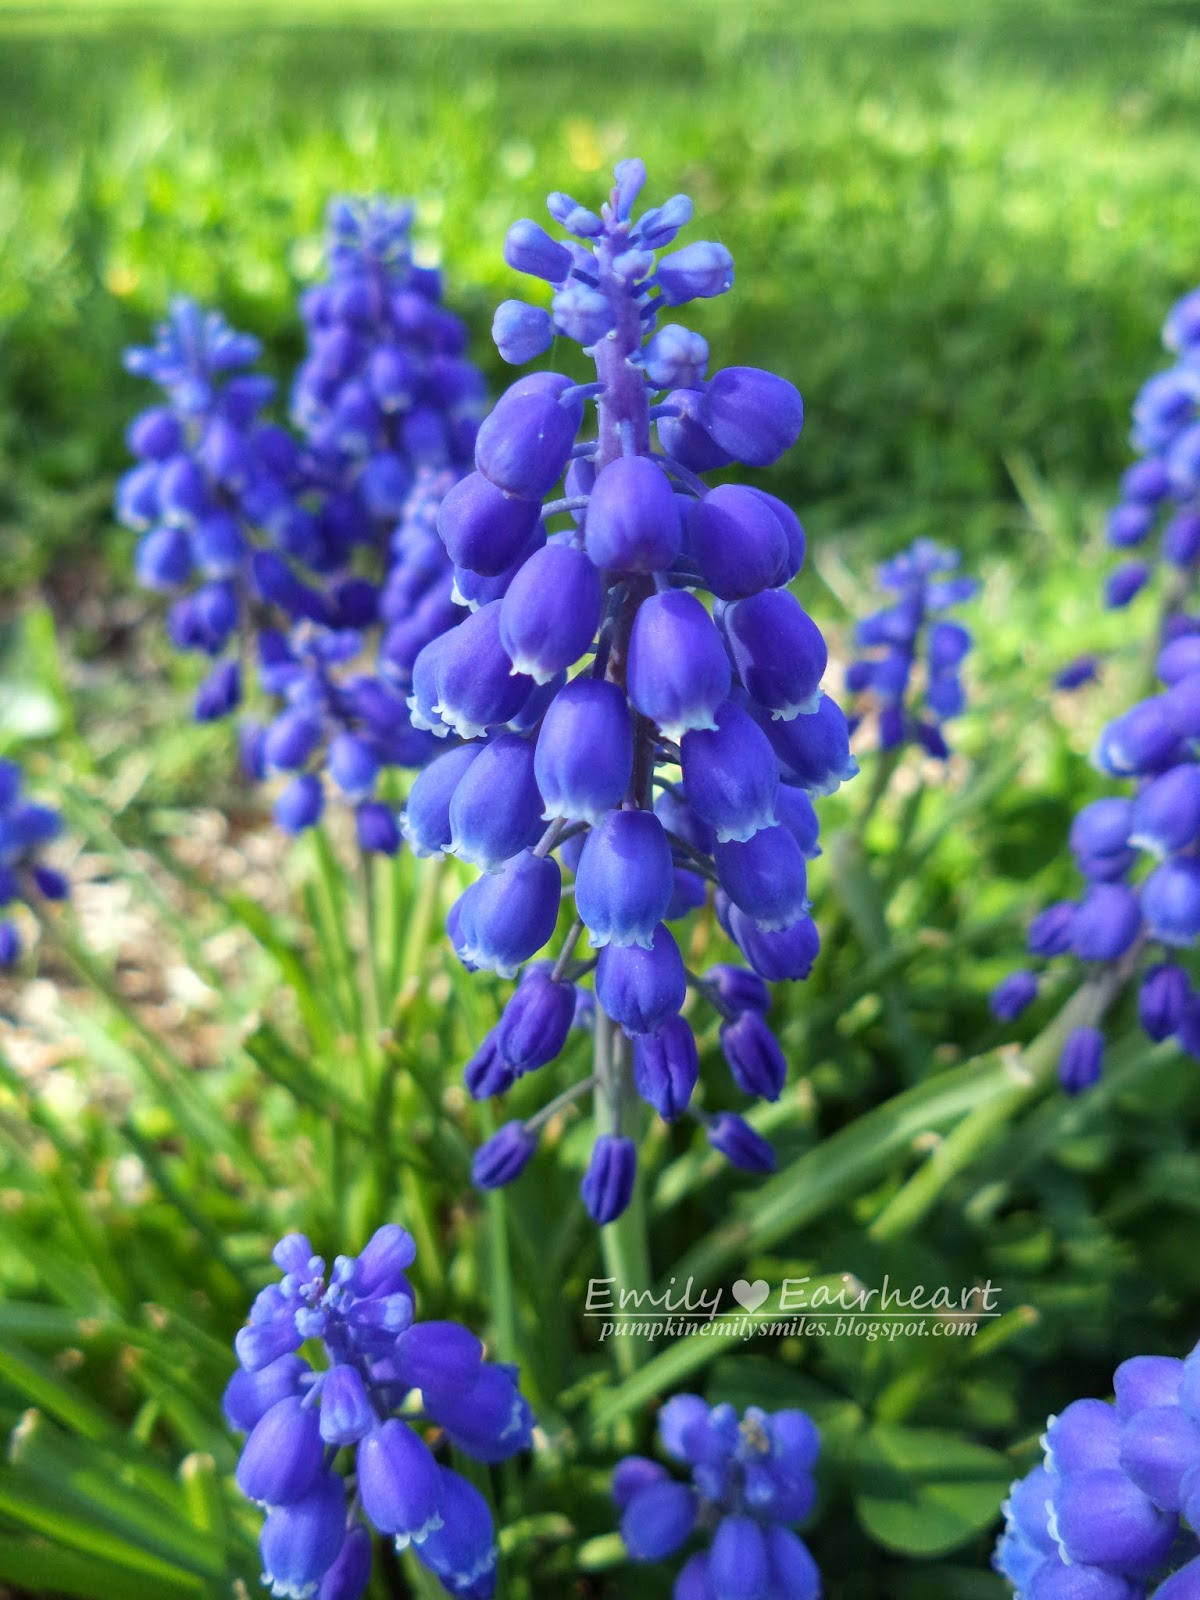 A close up picture of a Grape Hyacinth.